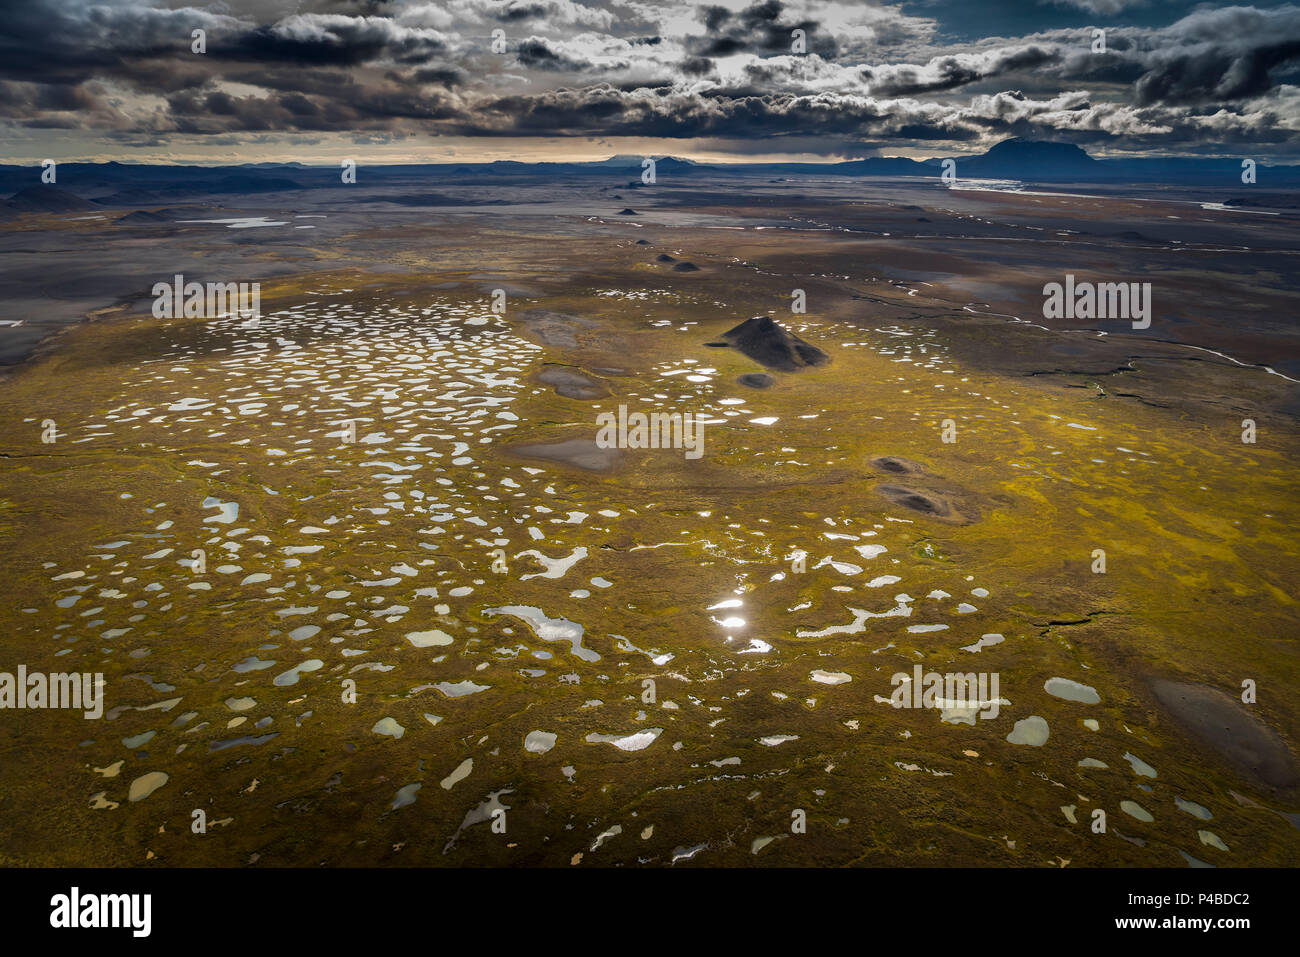 Lava fields and moss by Holuhraun. August 29, 2014 a fissure eruption started in Holuhraun at the northern end of a magma intrusion, which had moved progressively north, from the Bardarbunga volcano. Bardarbunga is a stratovolcano located under Vatnajokull, Iceland's most extensive glacier. - Stock Image